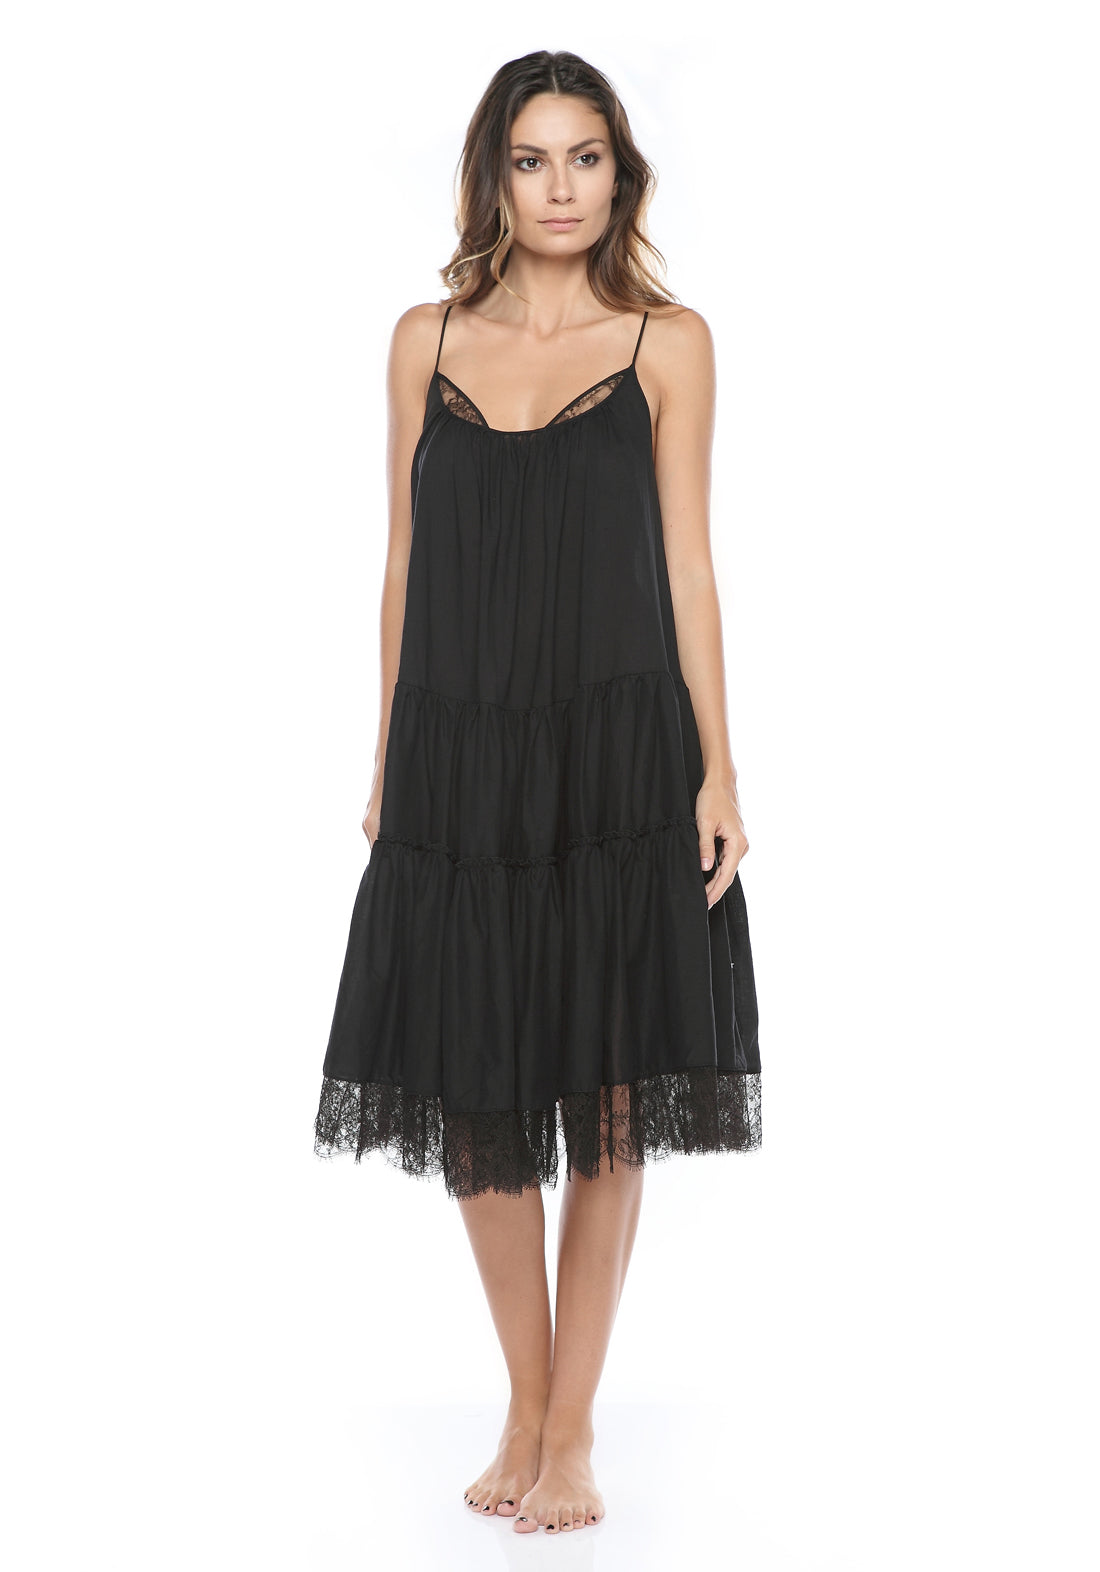 Paradiso Midi Cotton Dress With Lace in Black